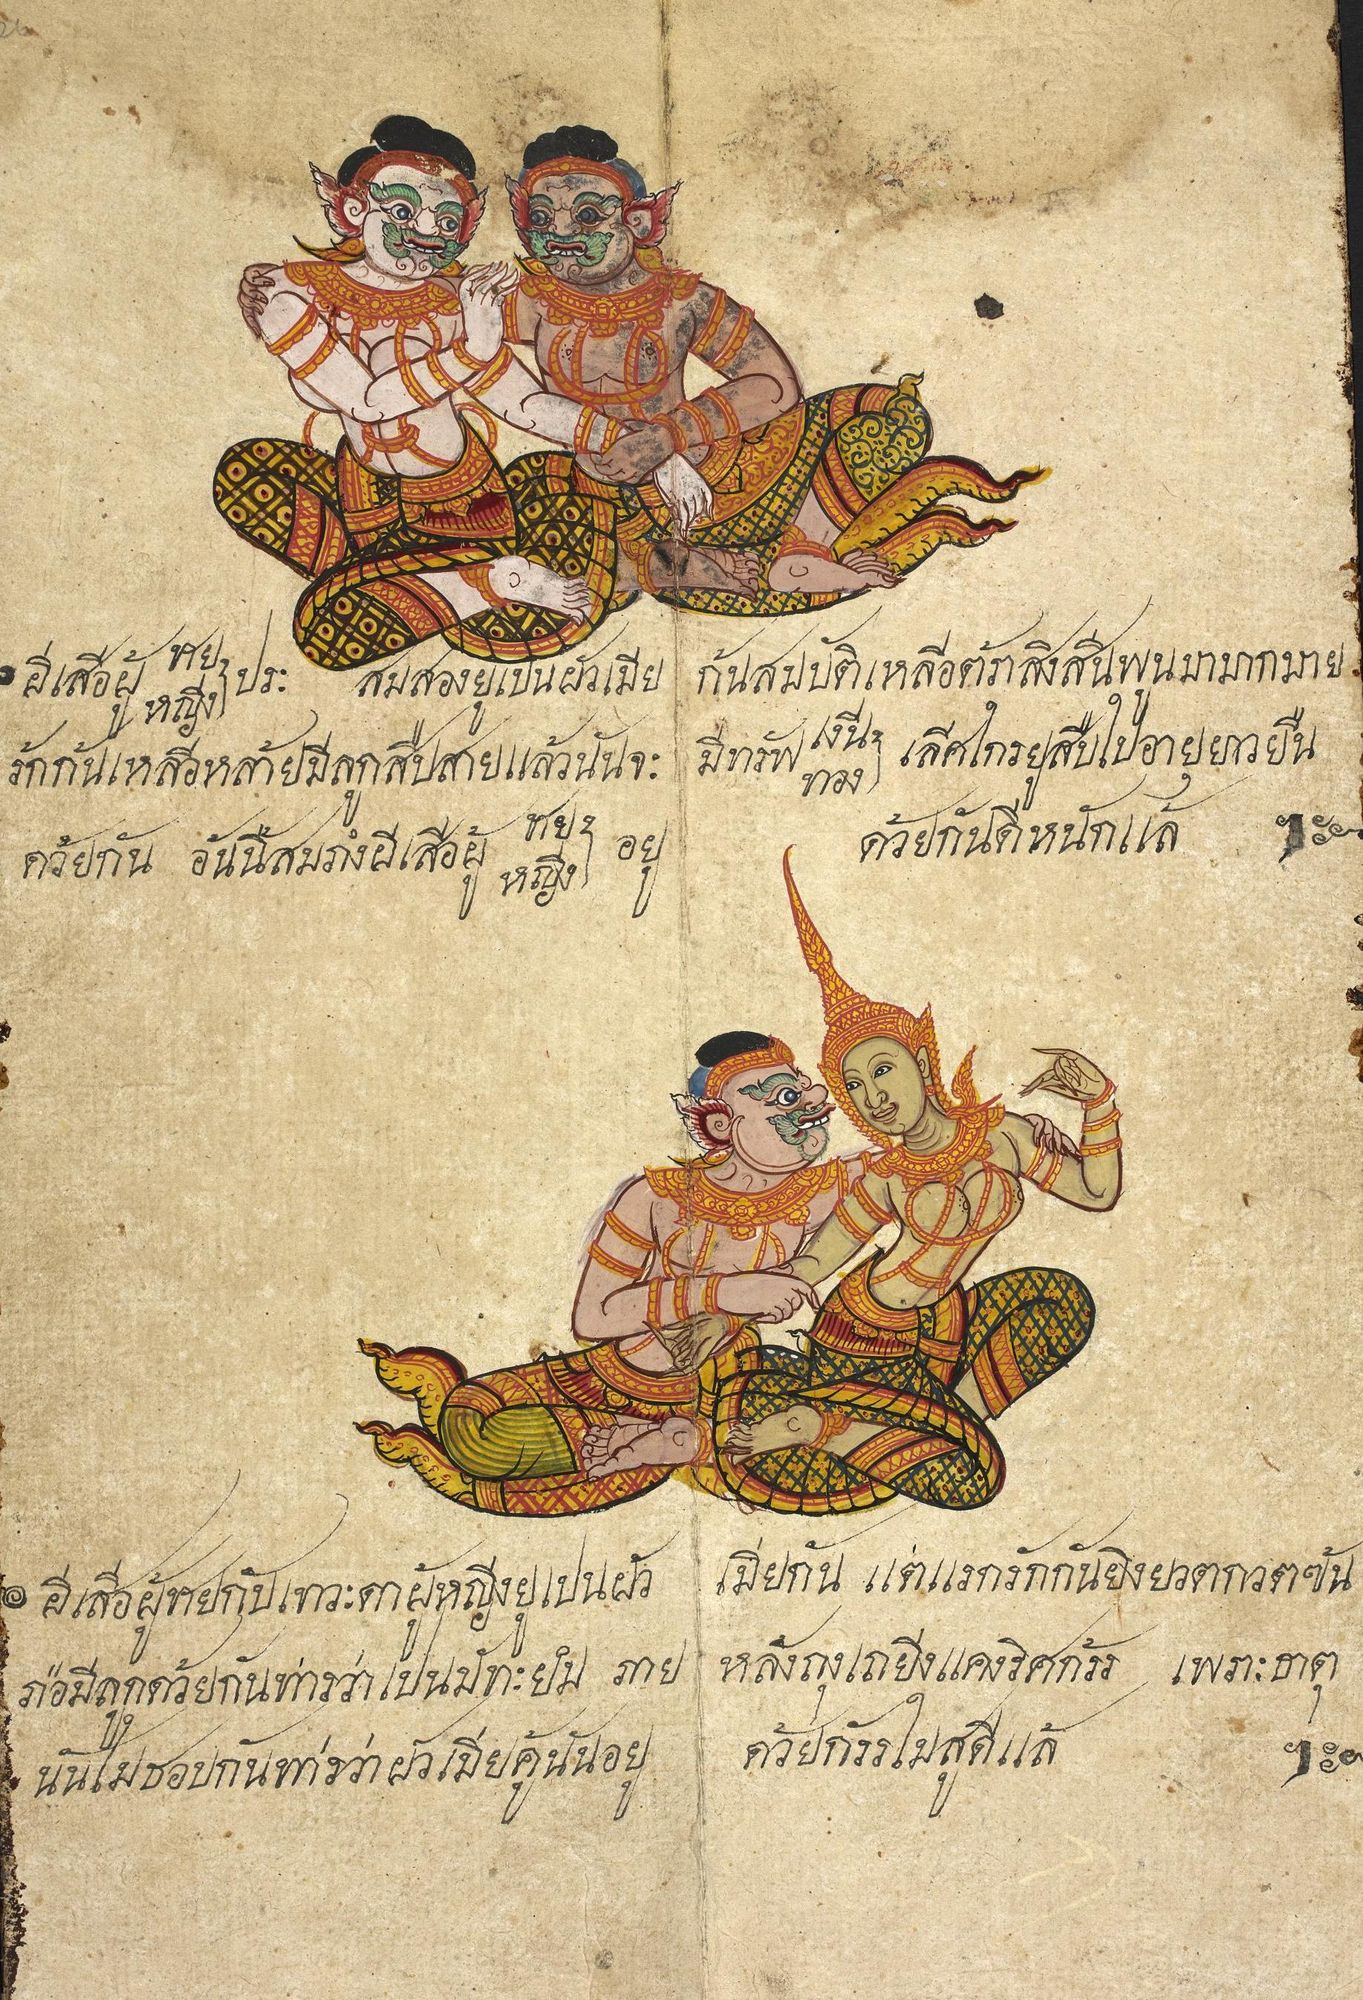 Asian and African studies blog: South East Asia